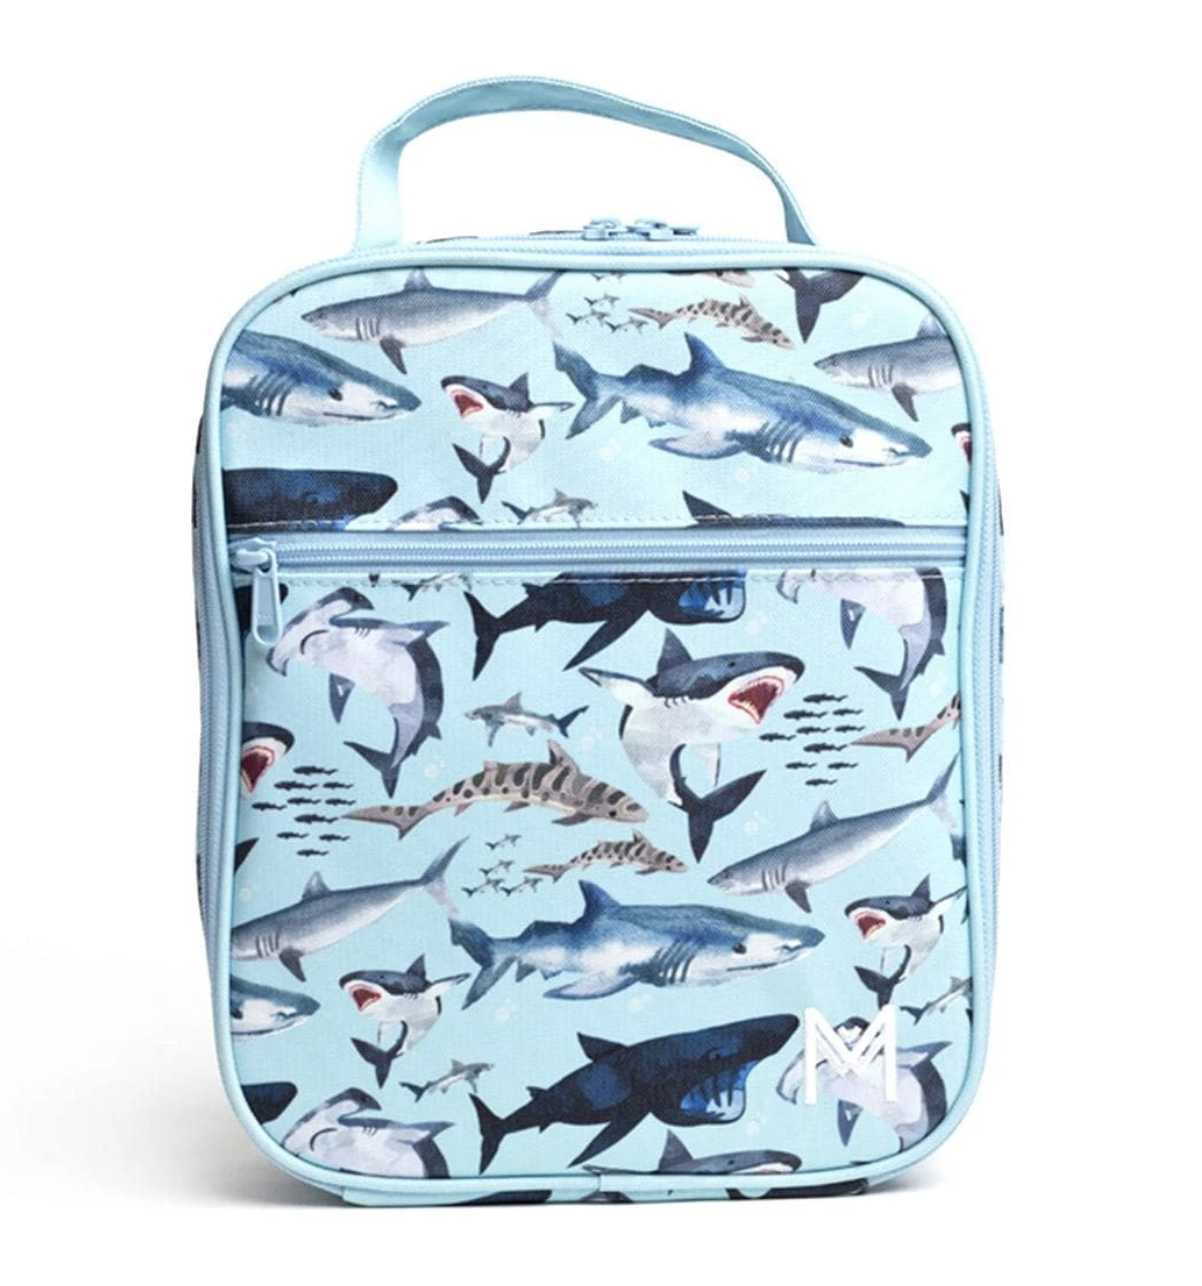 Montii insulated Lunch Bag - Shark-1